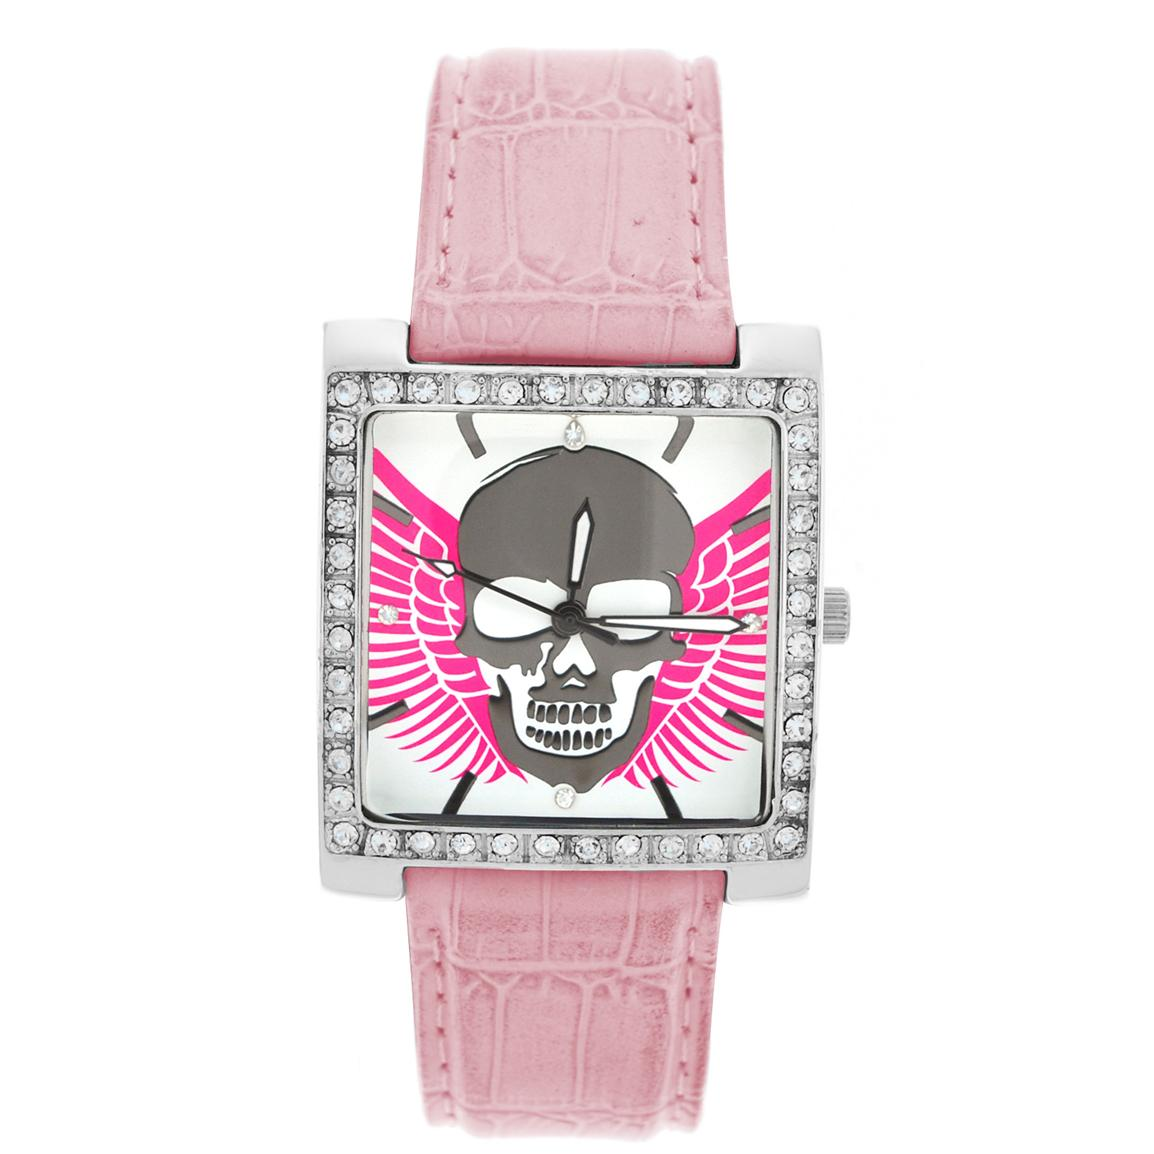 Ram Highway Honey Women's Pink with Skull & Wings Watch